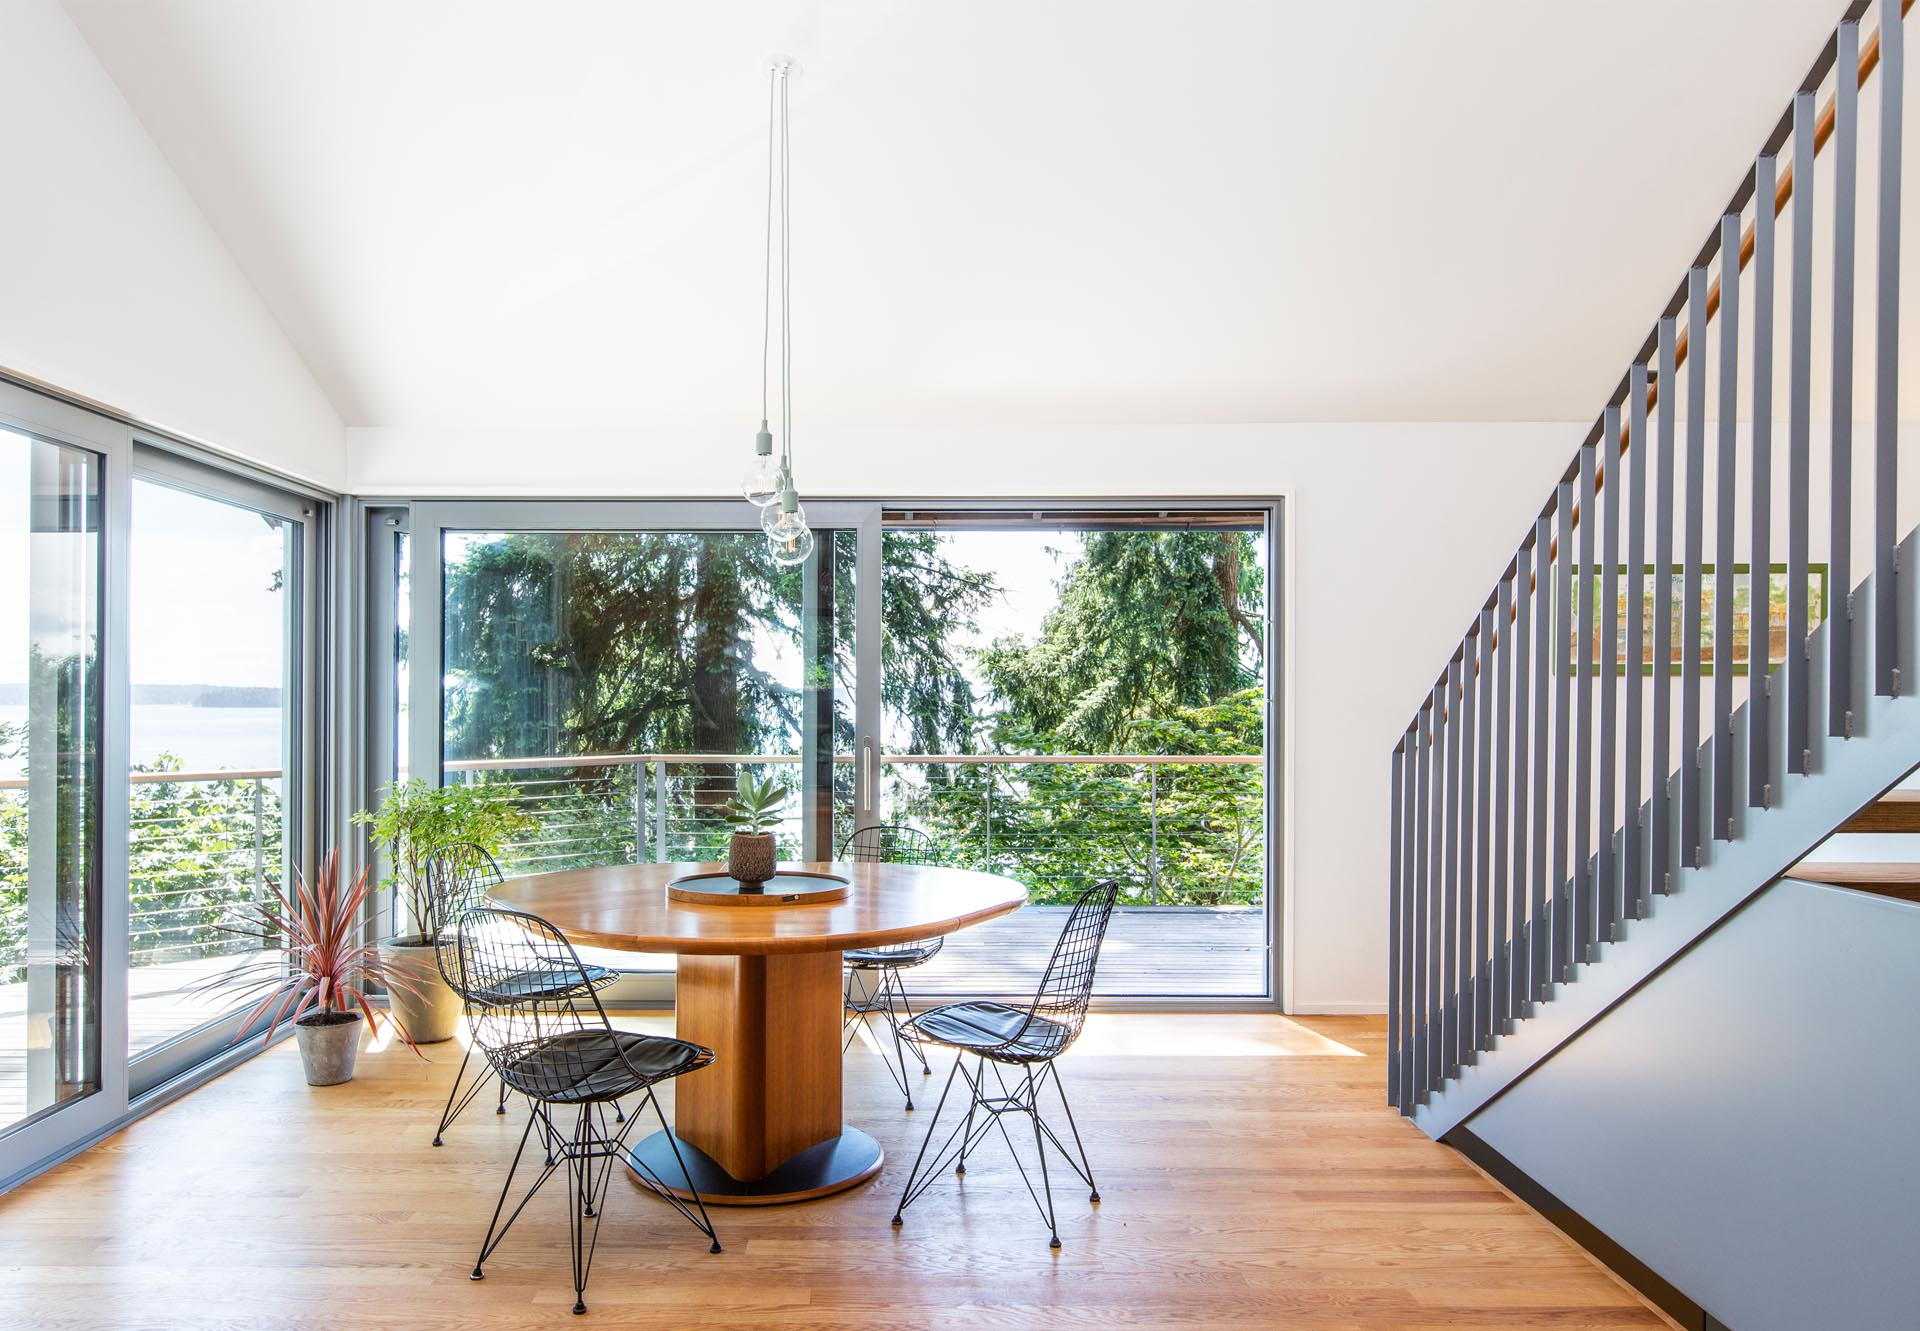 A dining room with a round wood table and sliding doors that open to the balcony.